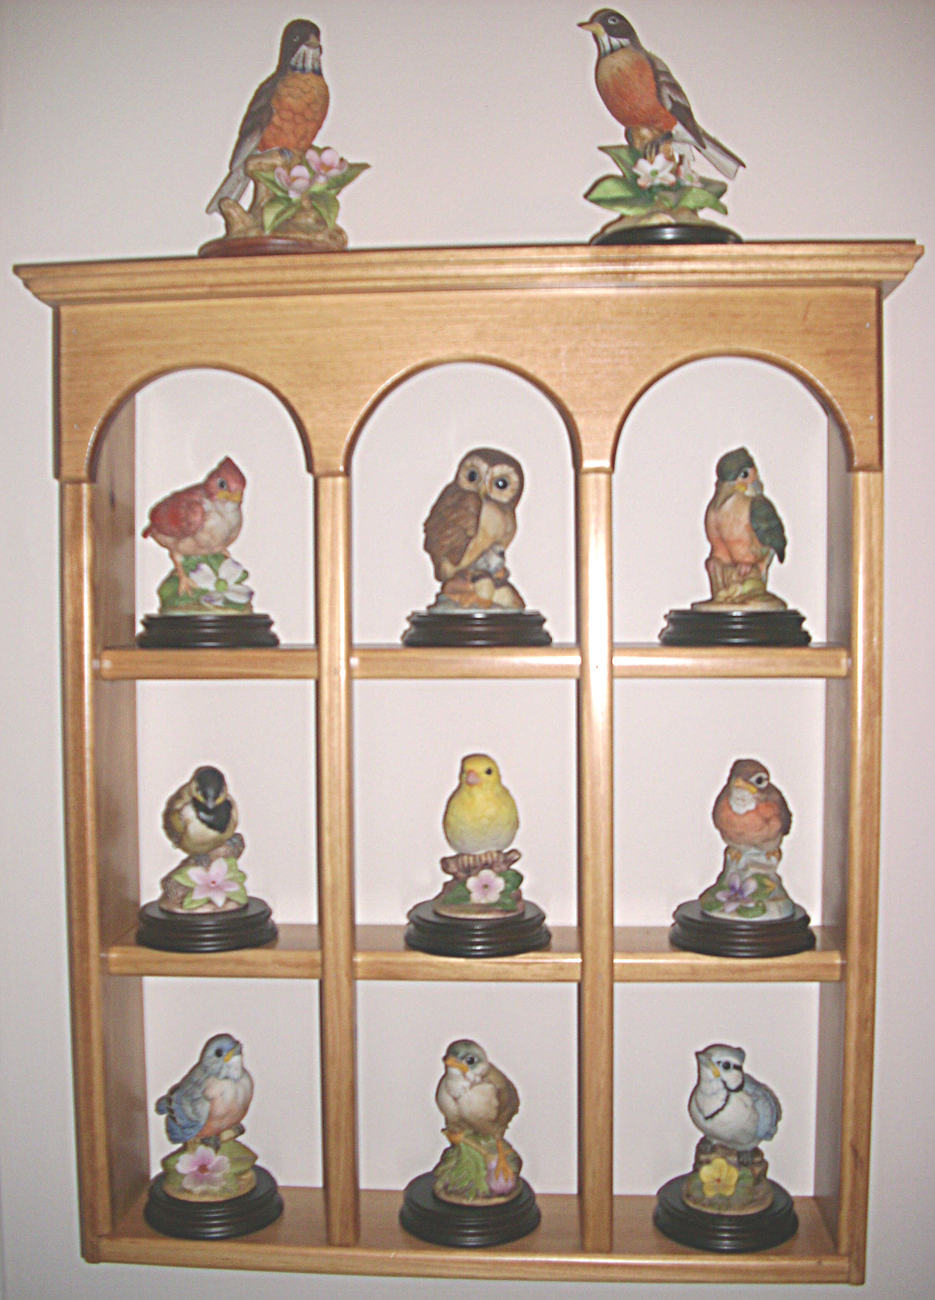 Curio Shelf - Large Shelf - Wall Decor